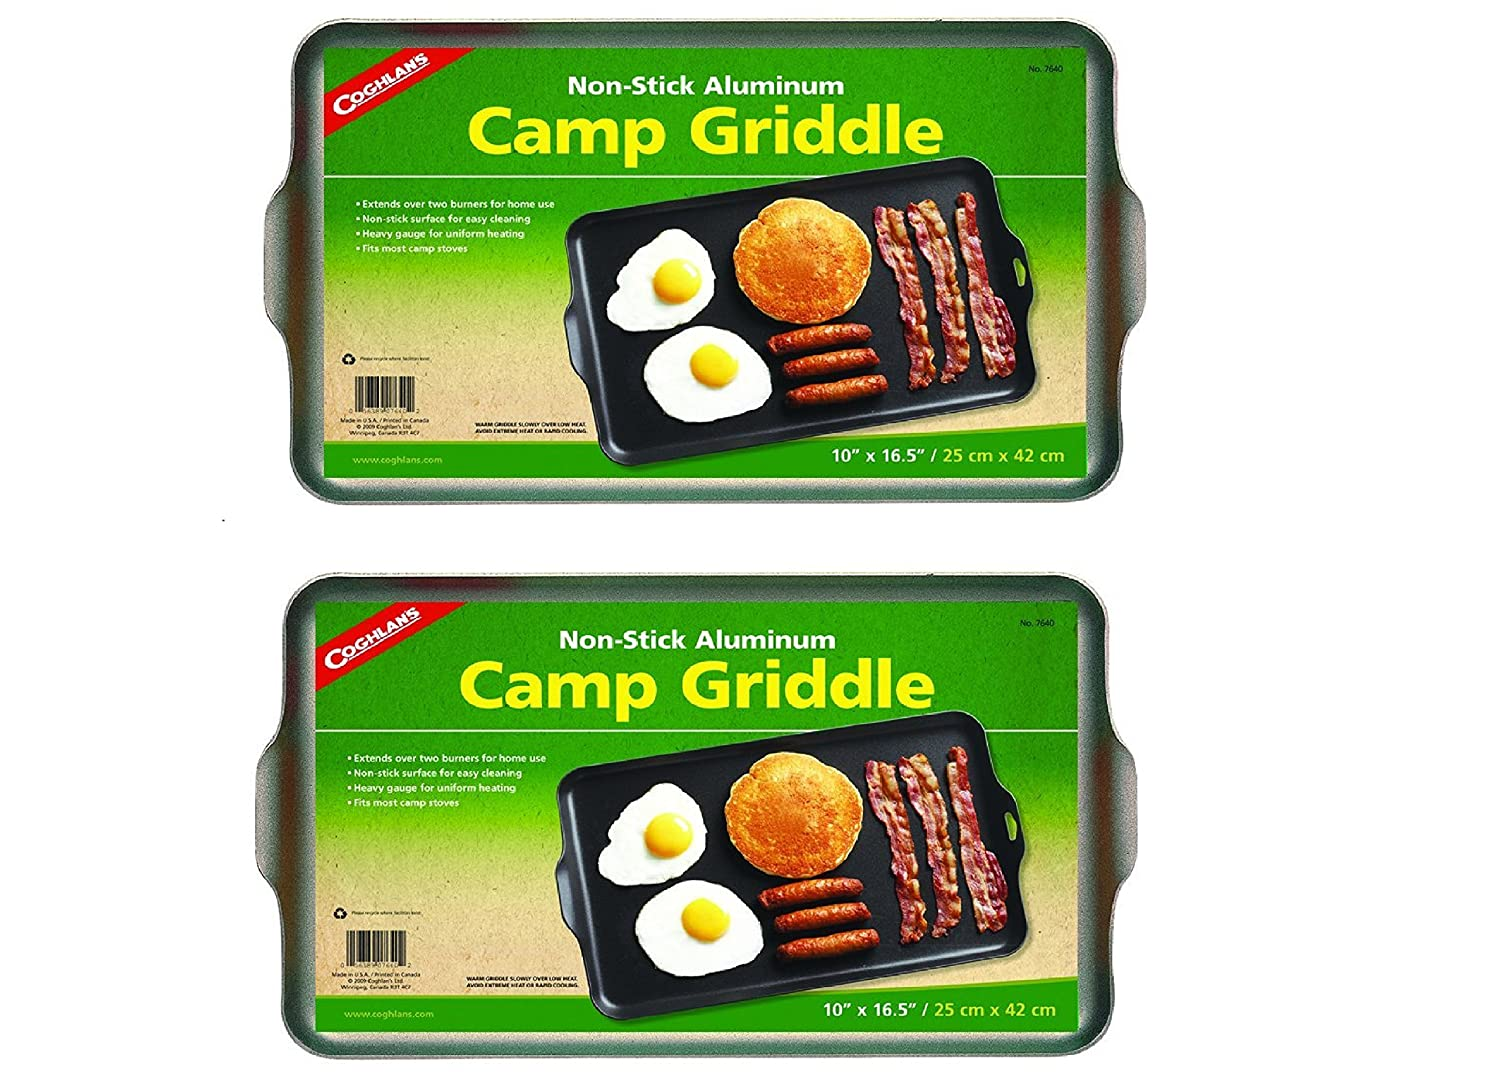 Amazon.com: Coghlan's Two Burner Non-Stick Camp Griddle, 16.5 x 10 ...